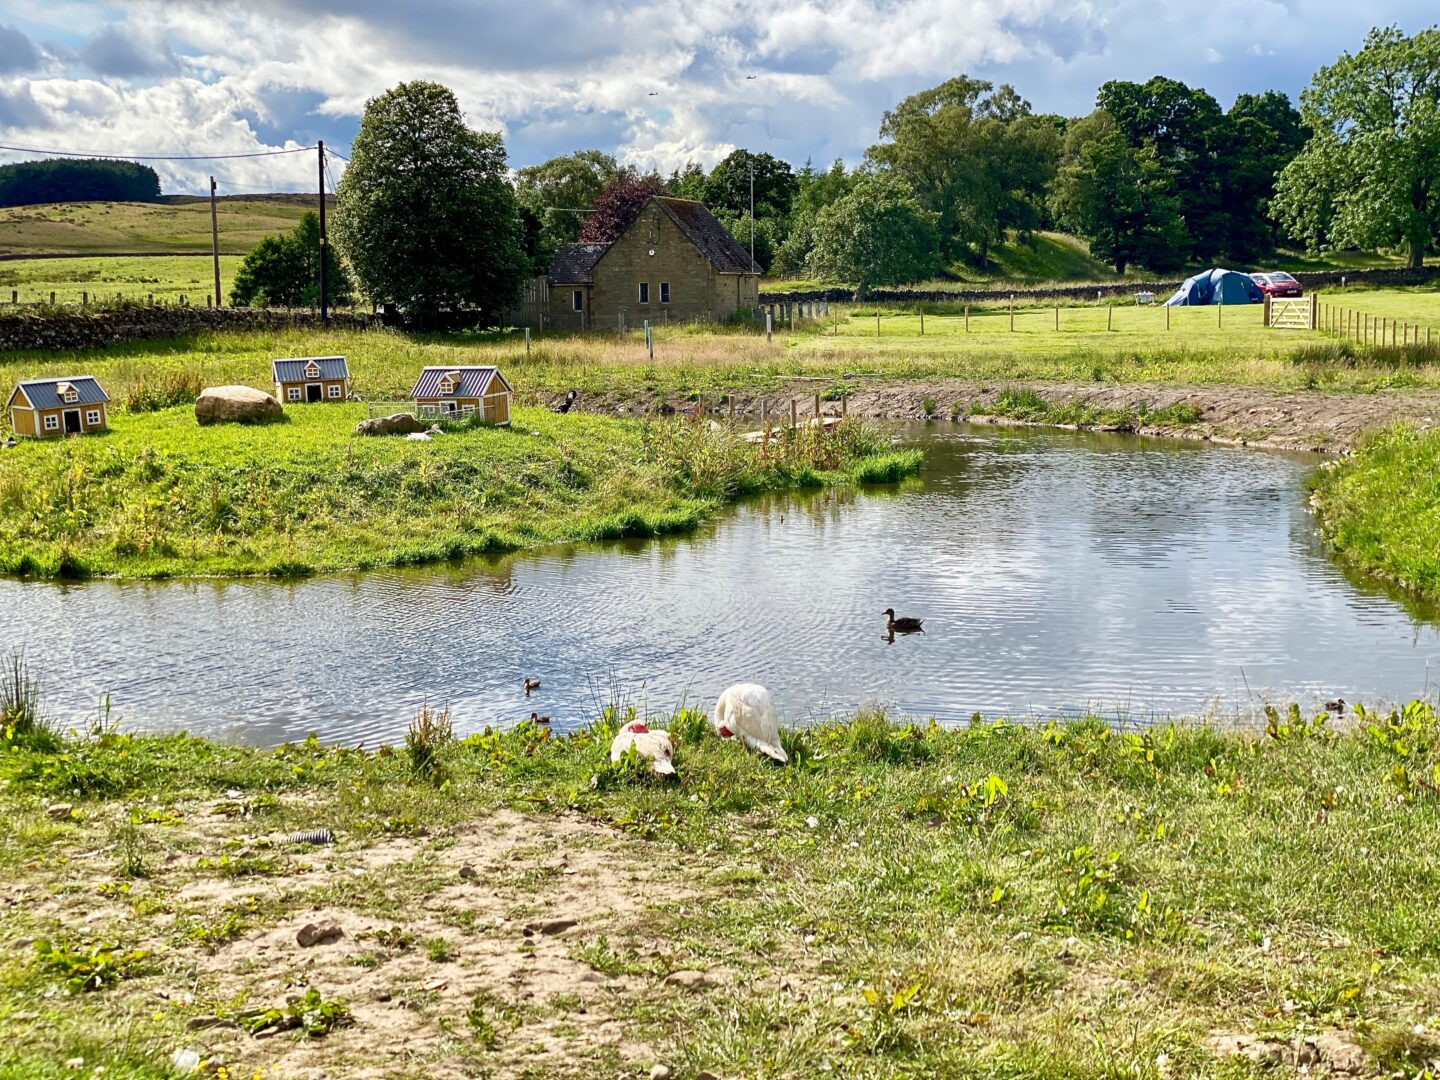 A pond with ducks on a campsite